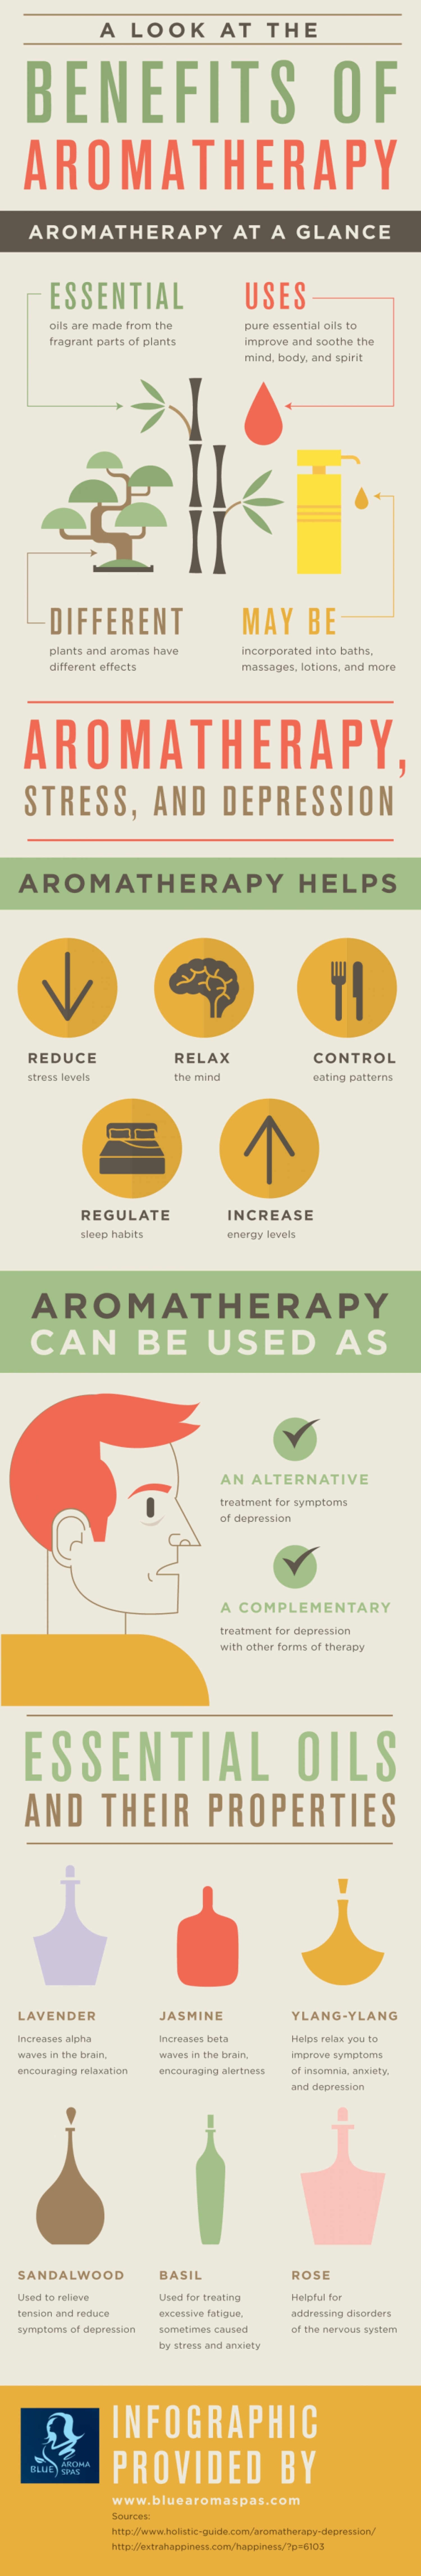 a-look-at-the-benefits-of-aromatherapy_54038df2c01b9_w1500